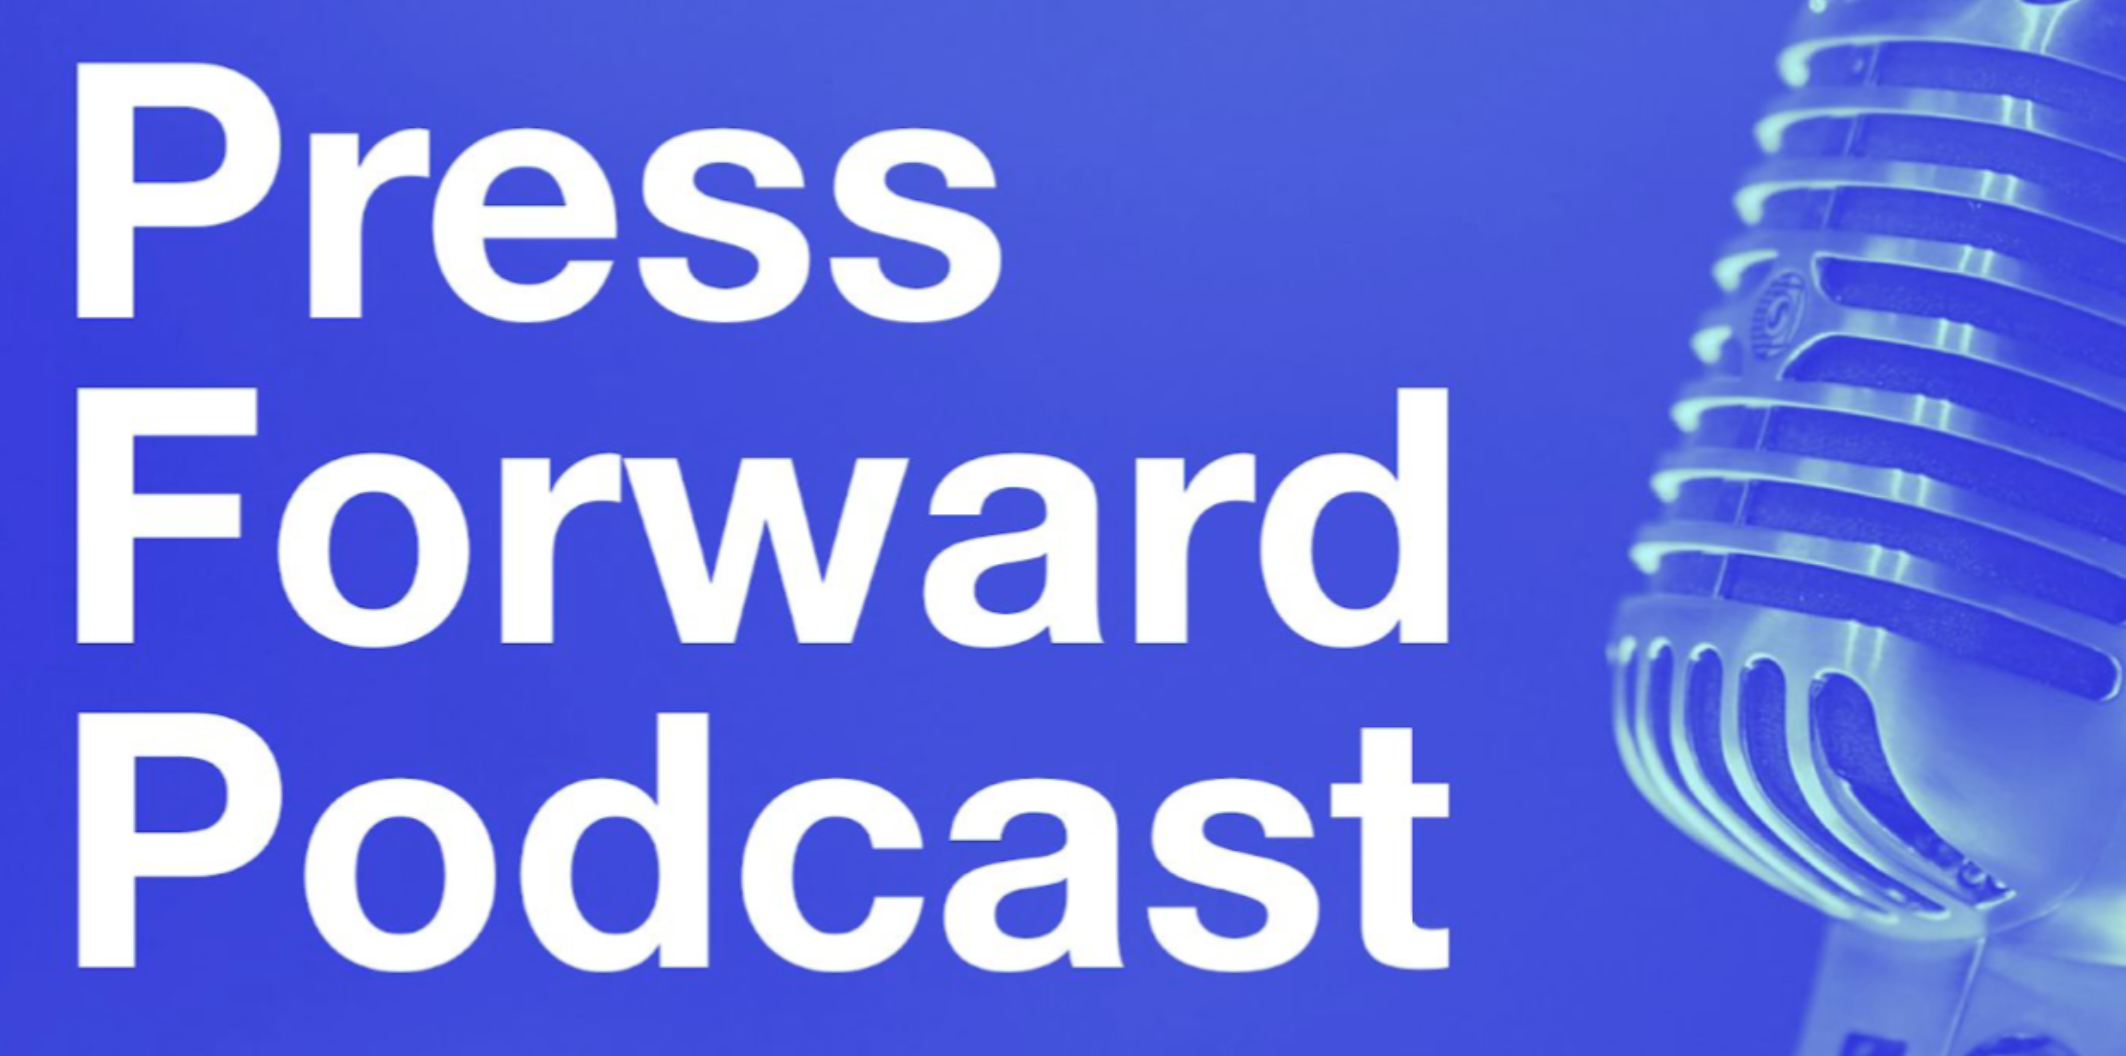 Press Forward Podcast - Gretchen Carlson - Episode 1 - On episode 1 of the Press Forward Podcast I discussed forced arbitration and a number of critical issues regarding the workplace today.Listen here.Visit www.thepressforward.org for more information.